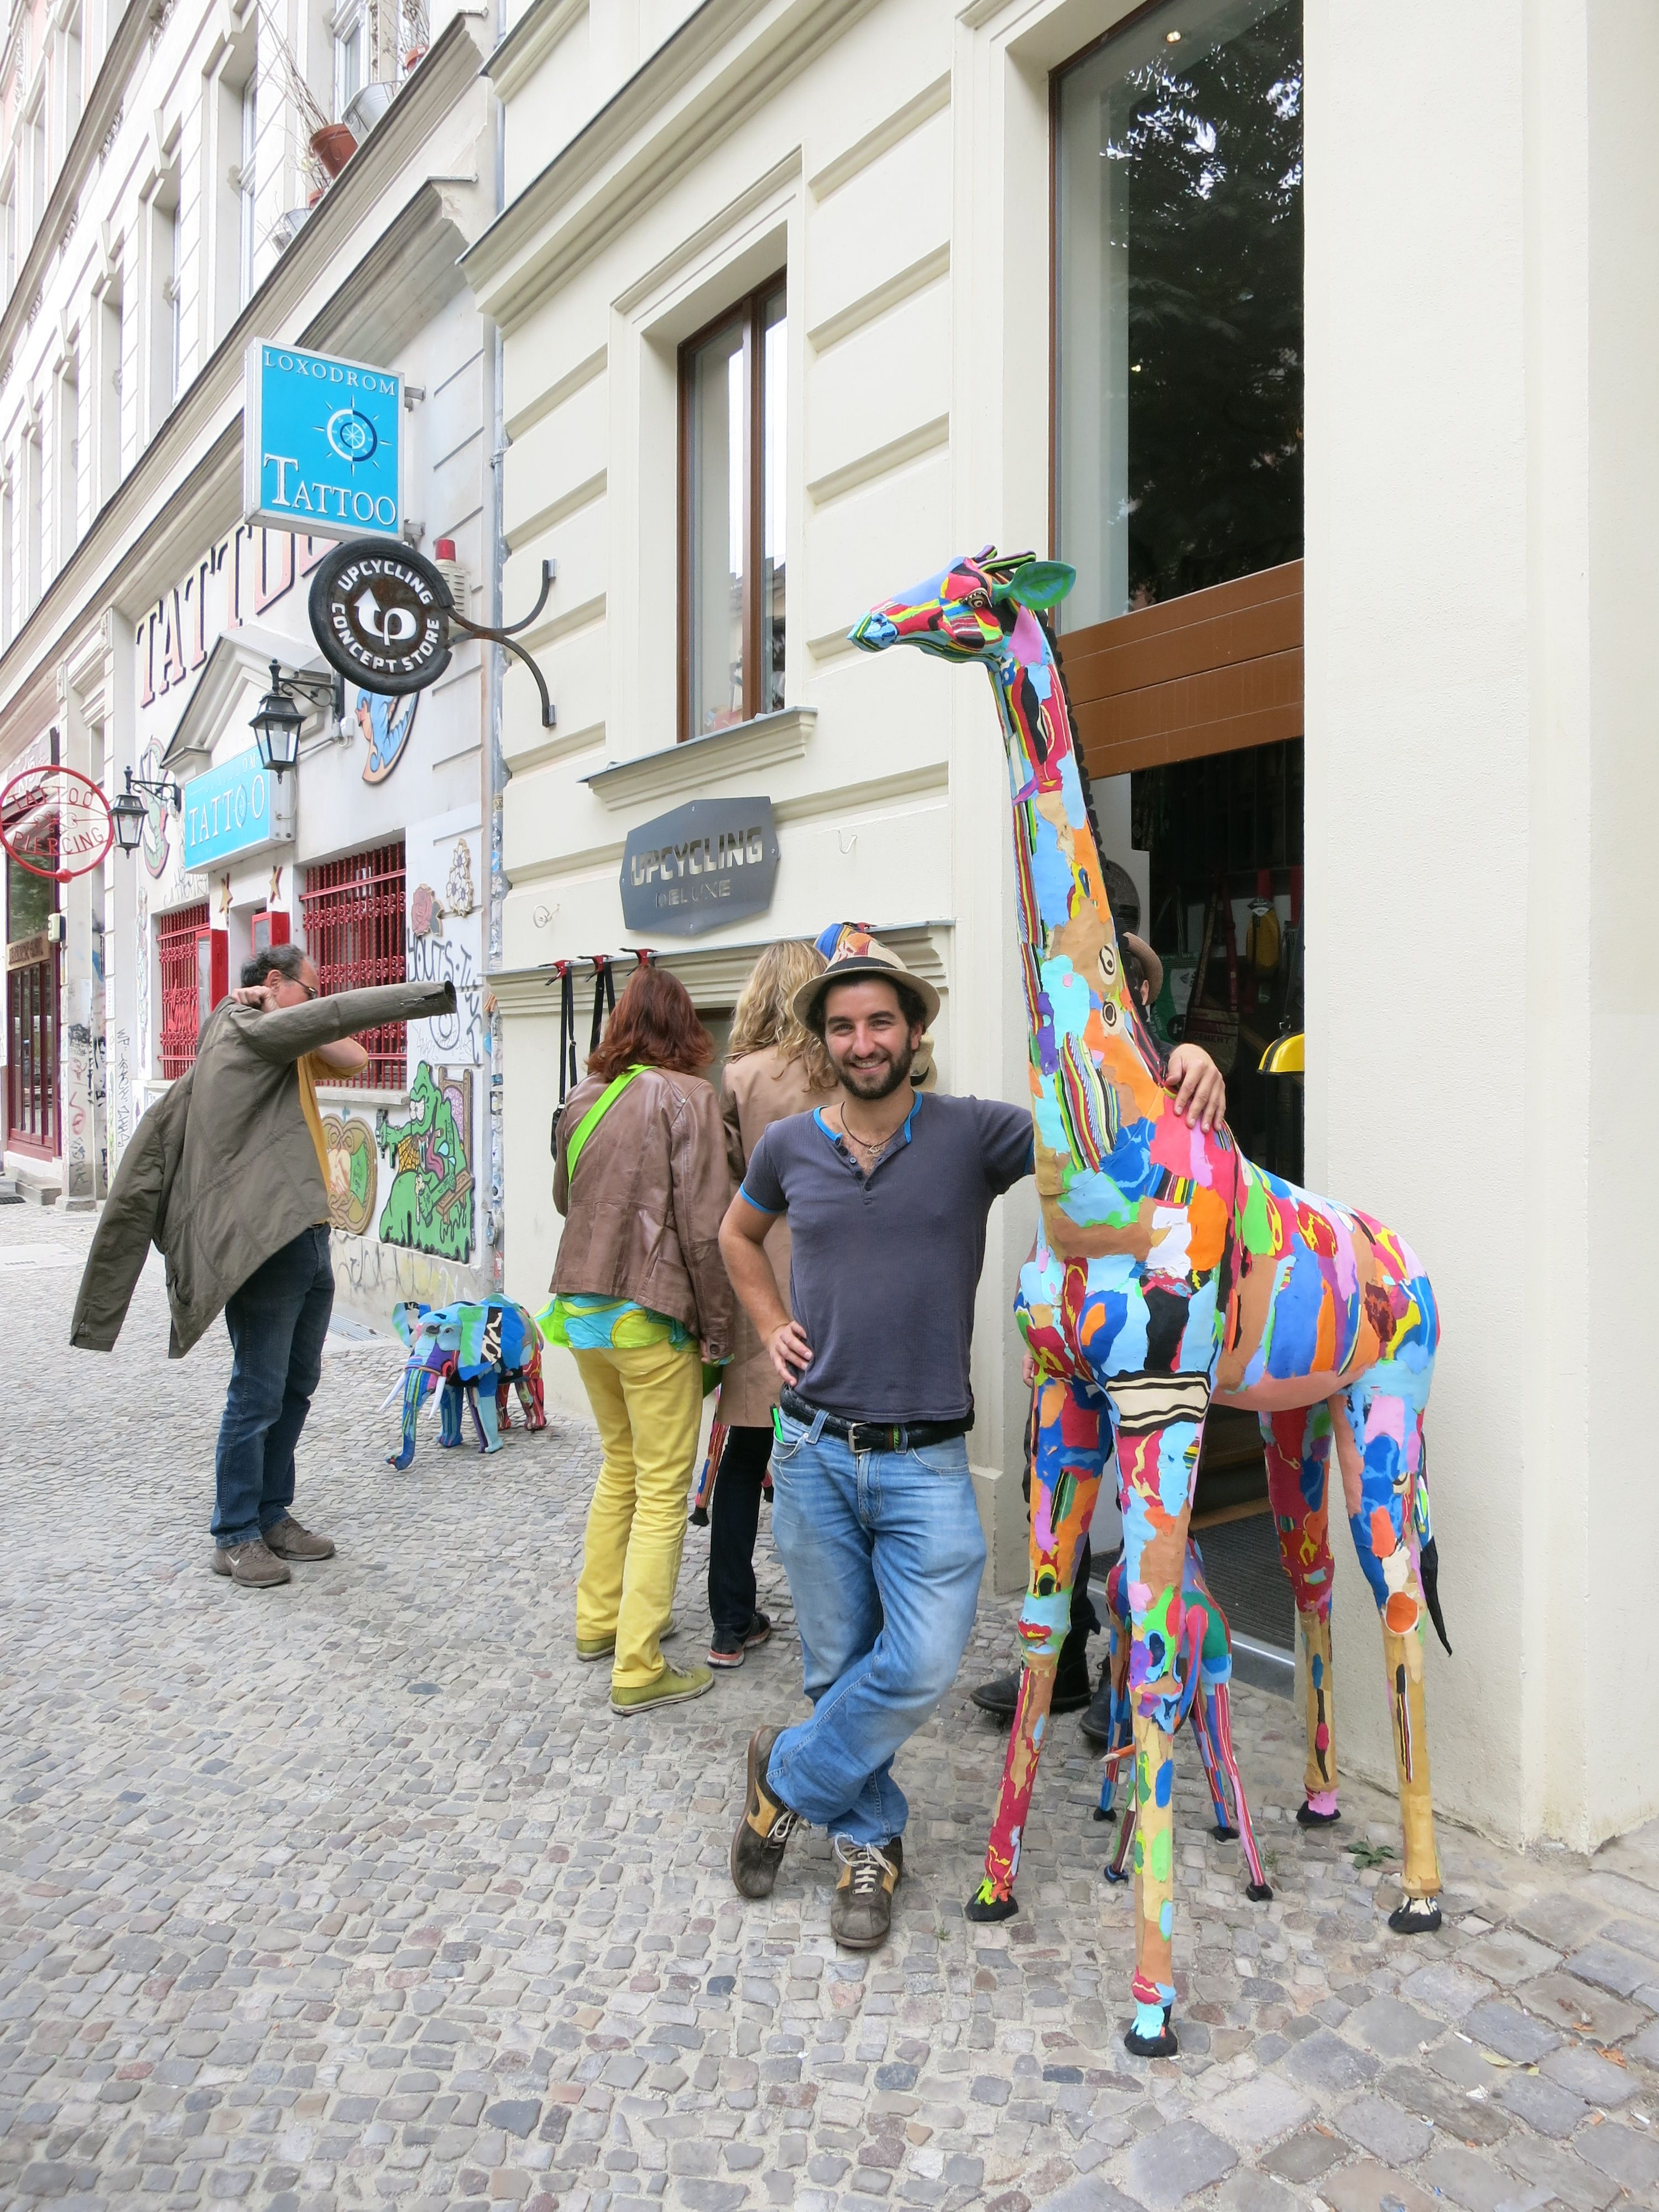 Upcycling Berlin tallest giraffe made from flip flops in all of europe in front of